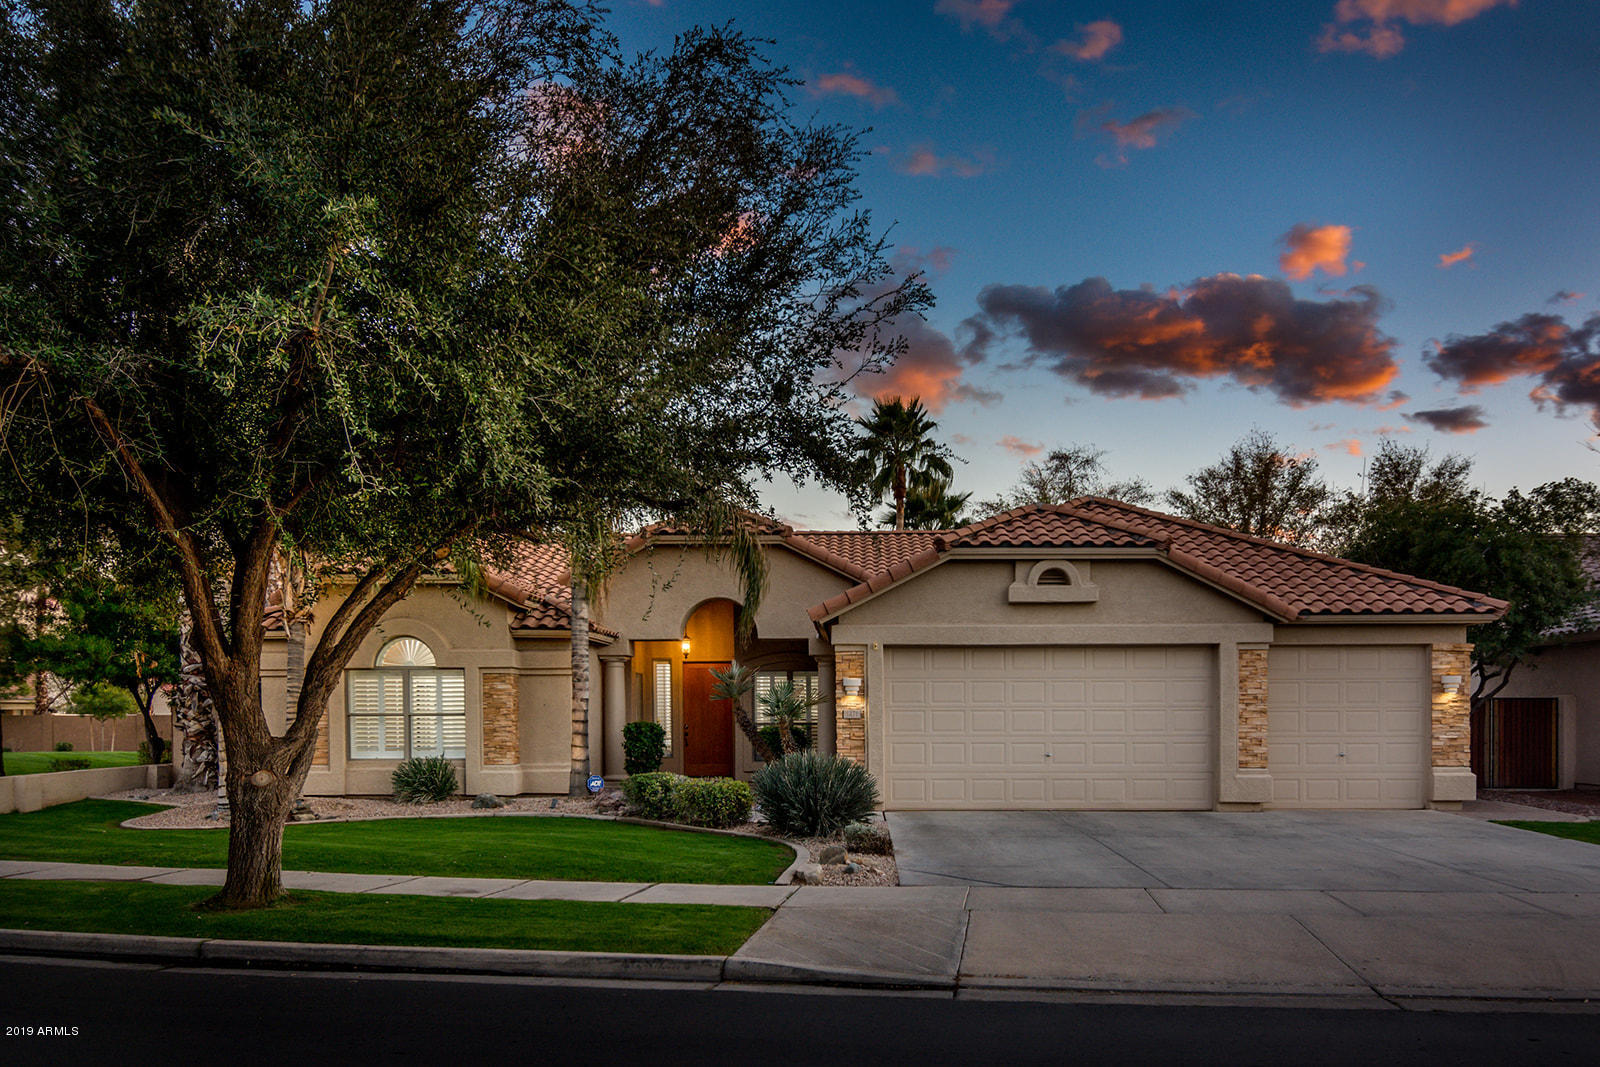 1471 W Bartlett Way, Chandler AZ 85248